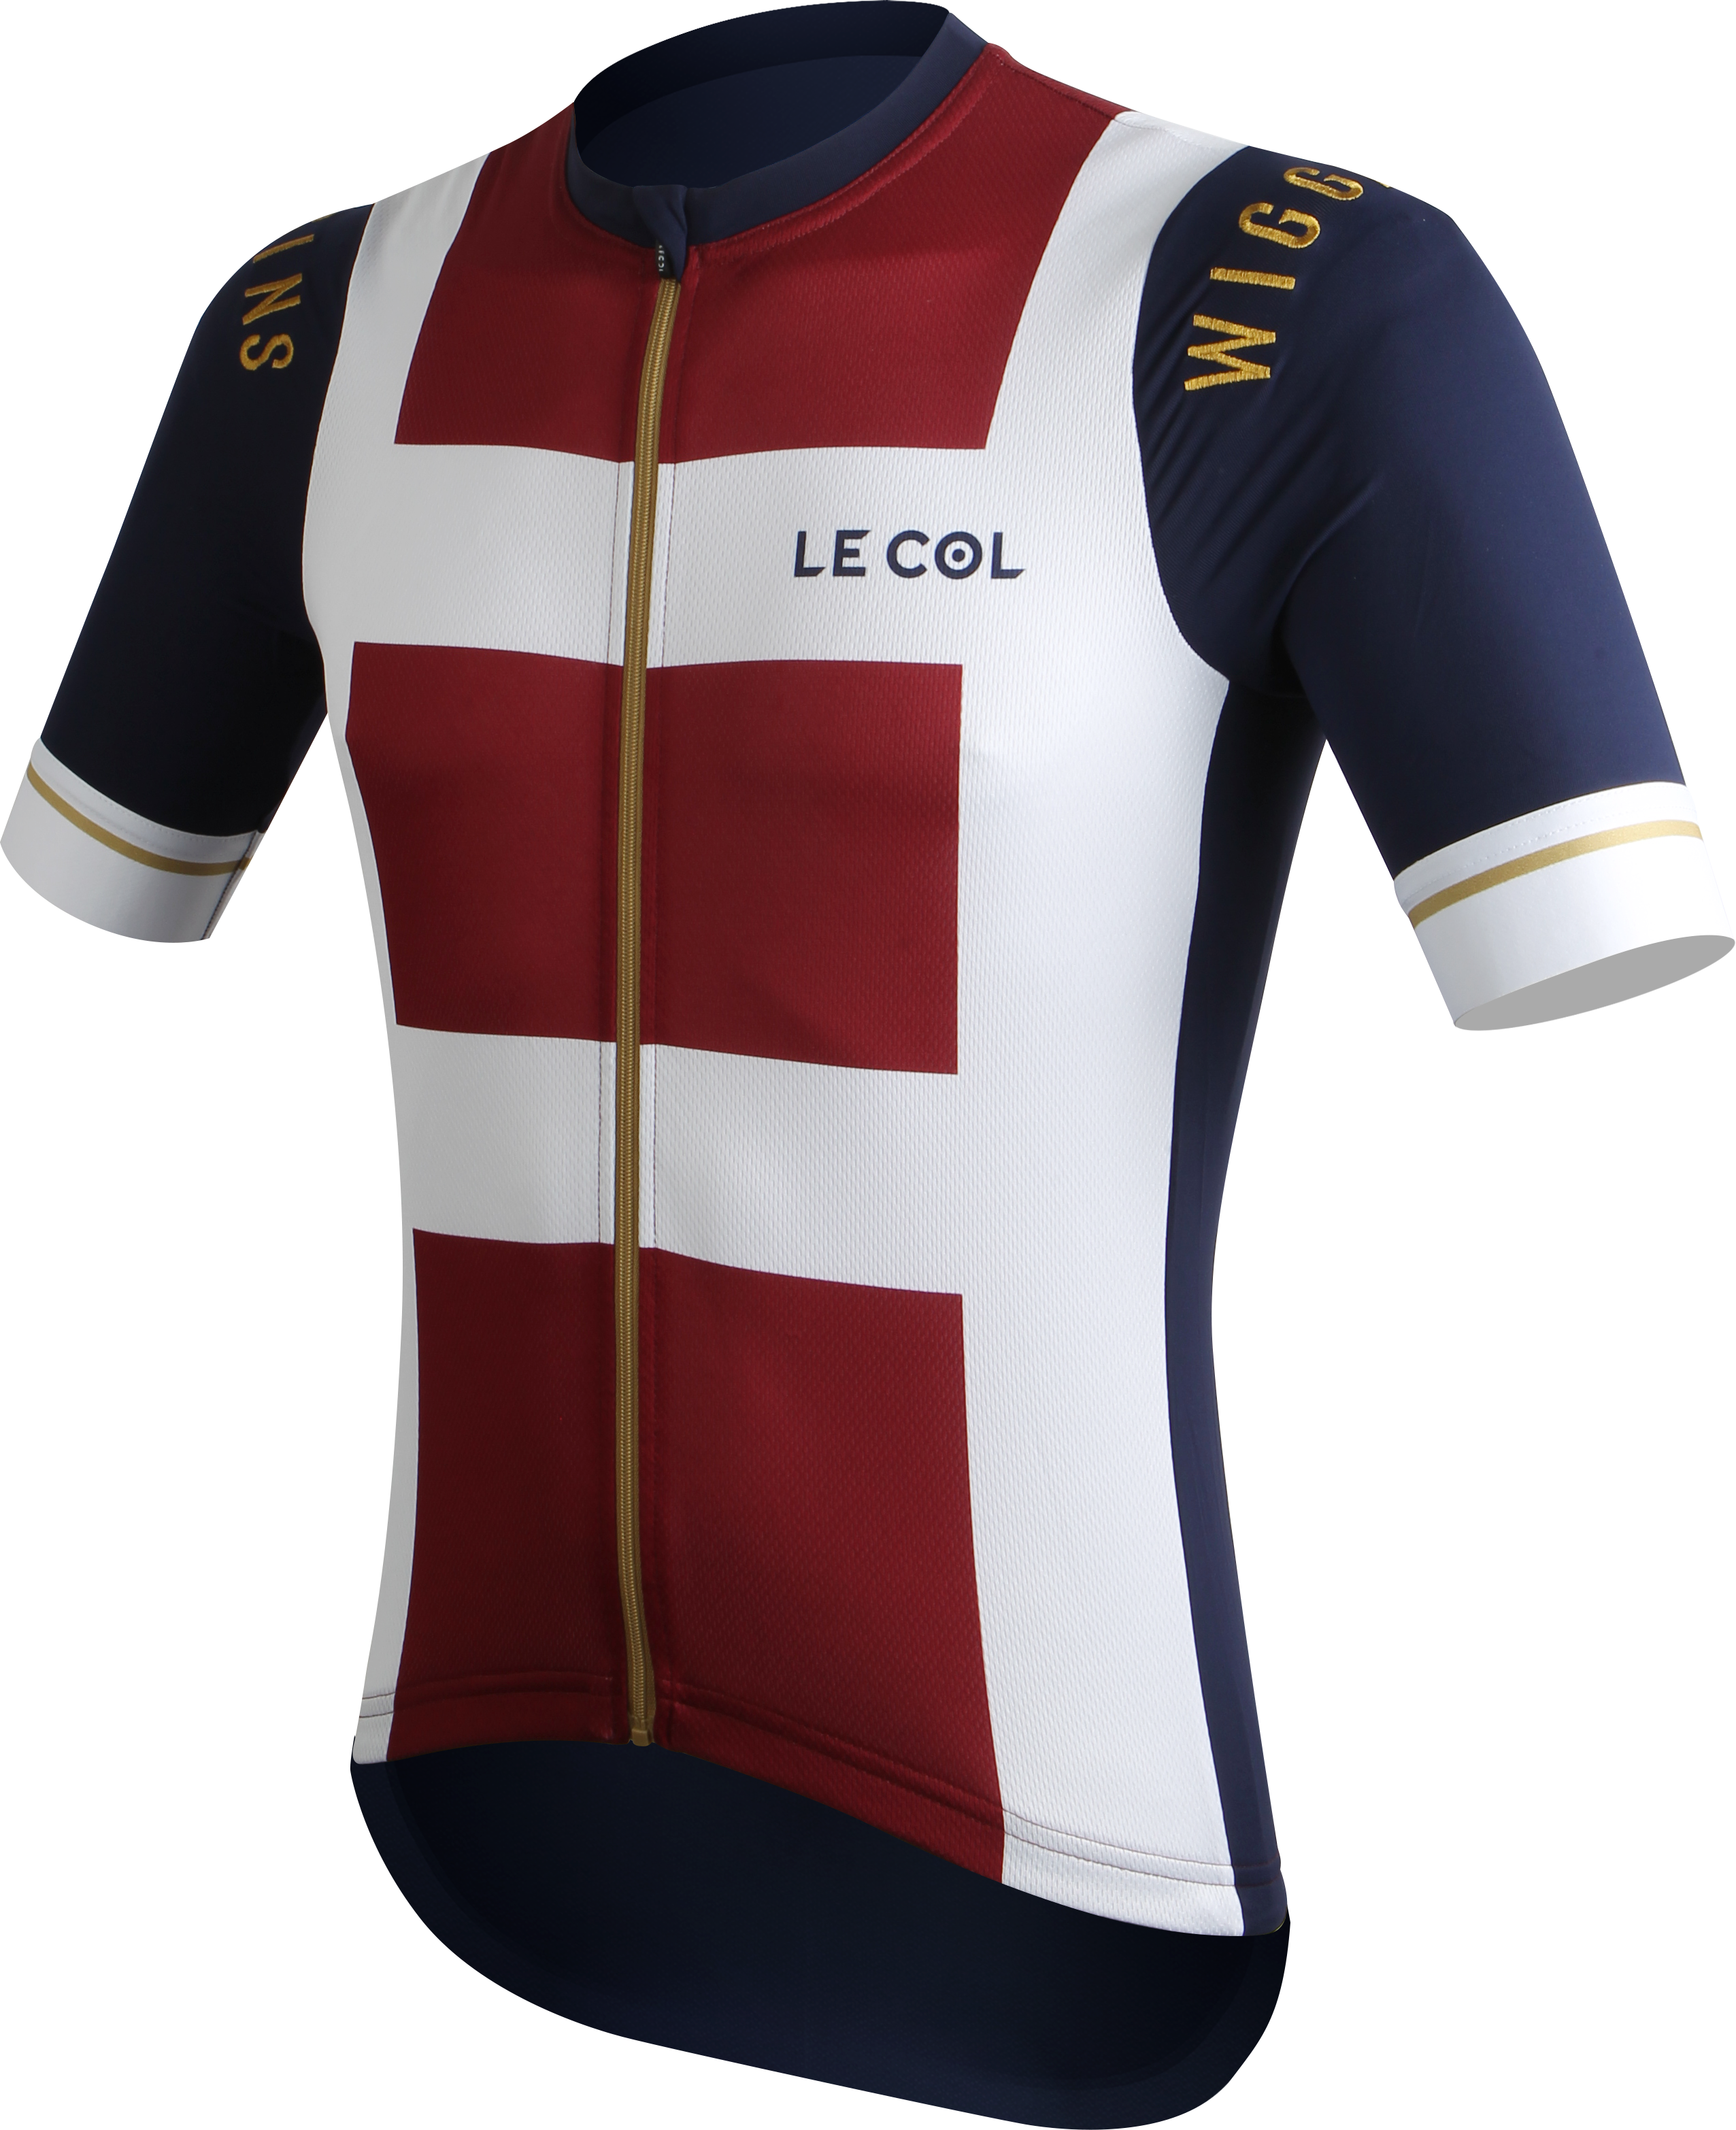 Le Col by Wiggins   PRO Mens Cycling Jersey   White   Red - 700 8767d6dcc